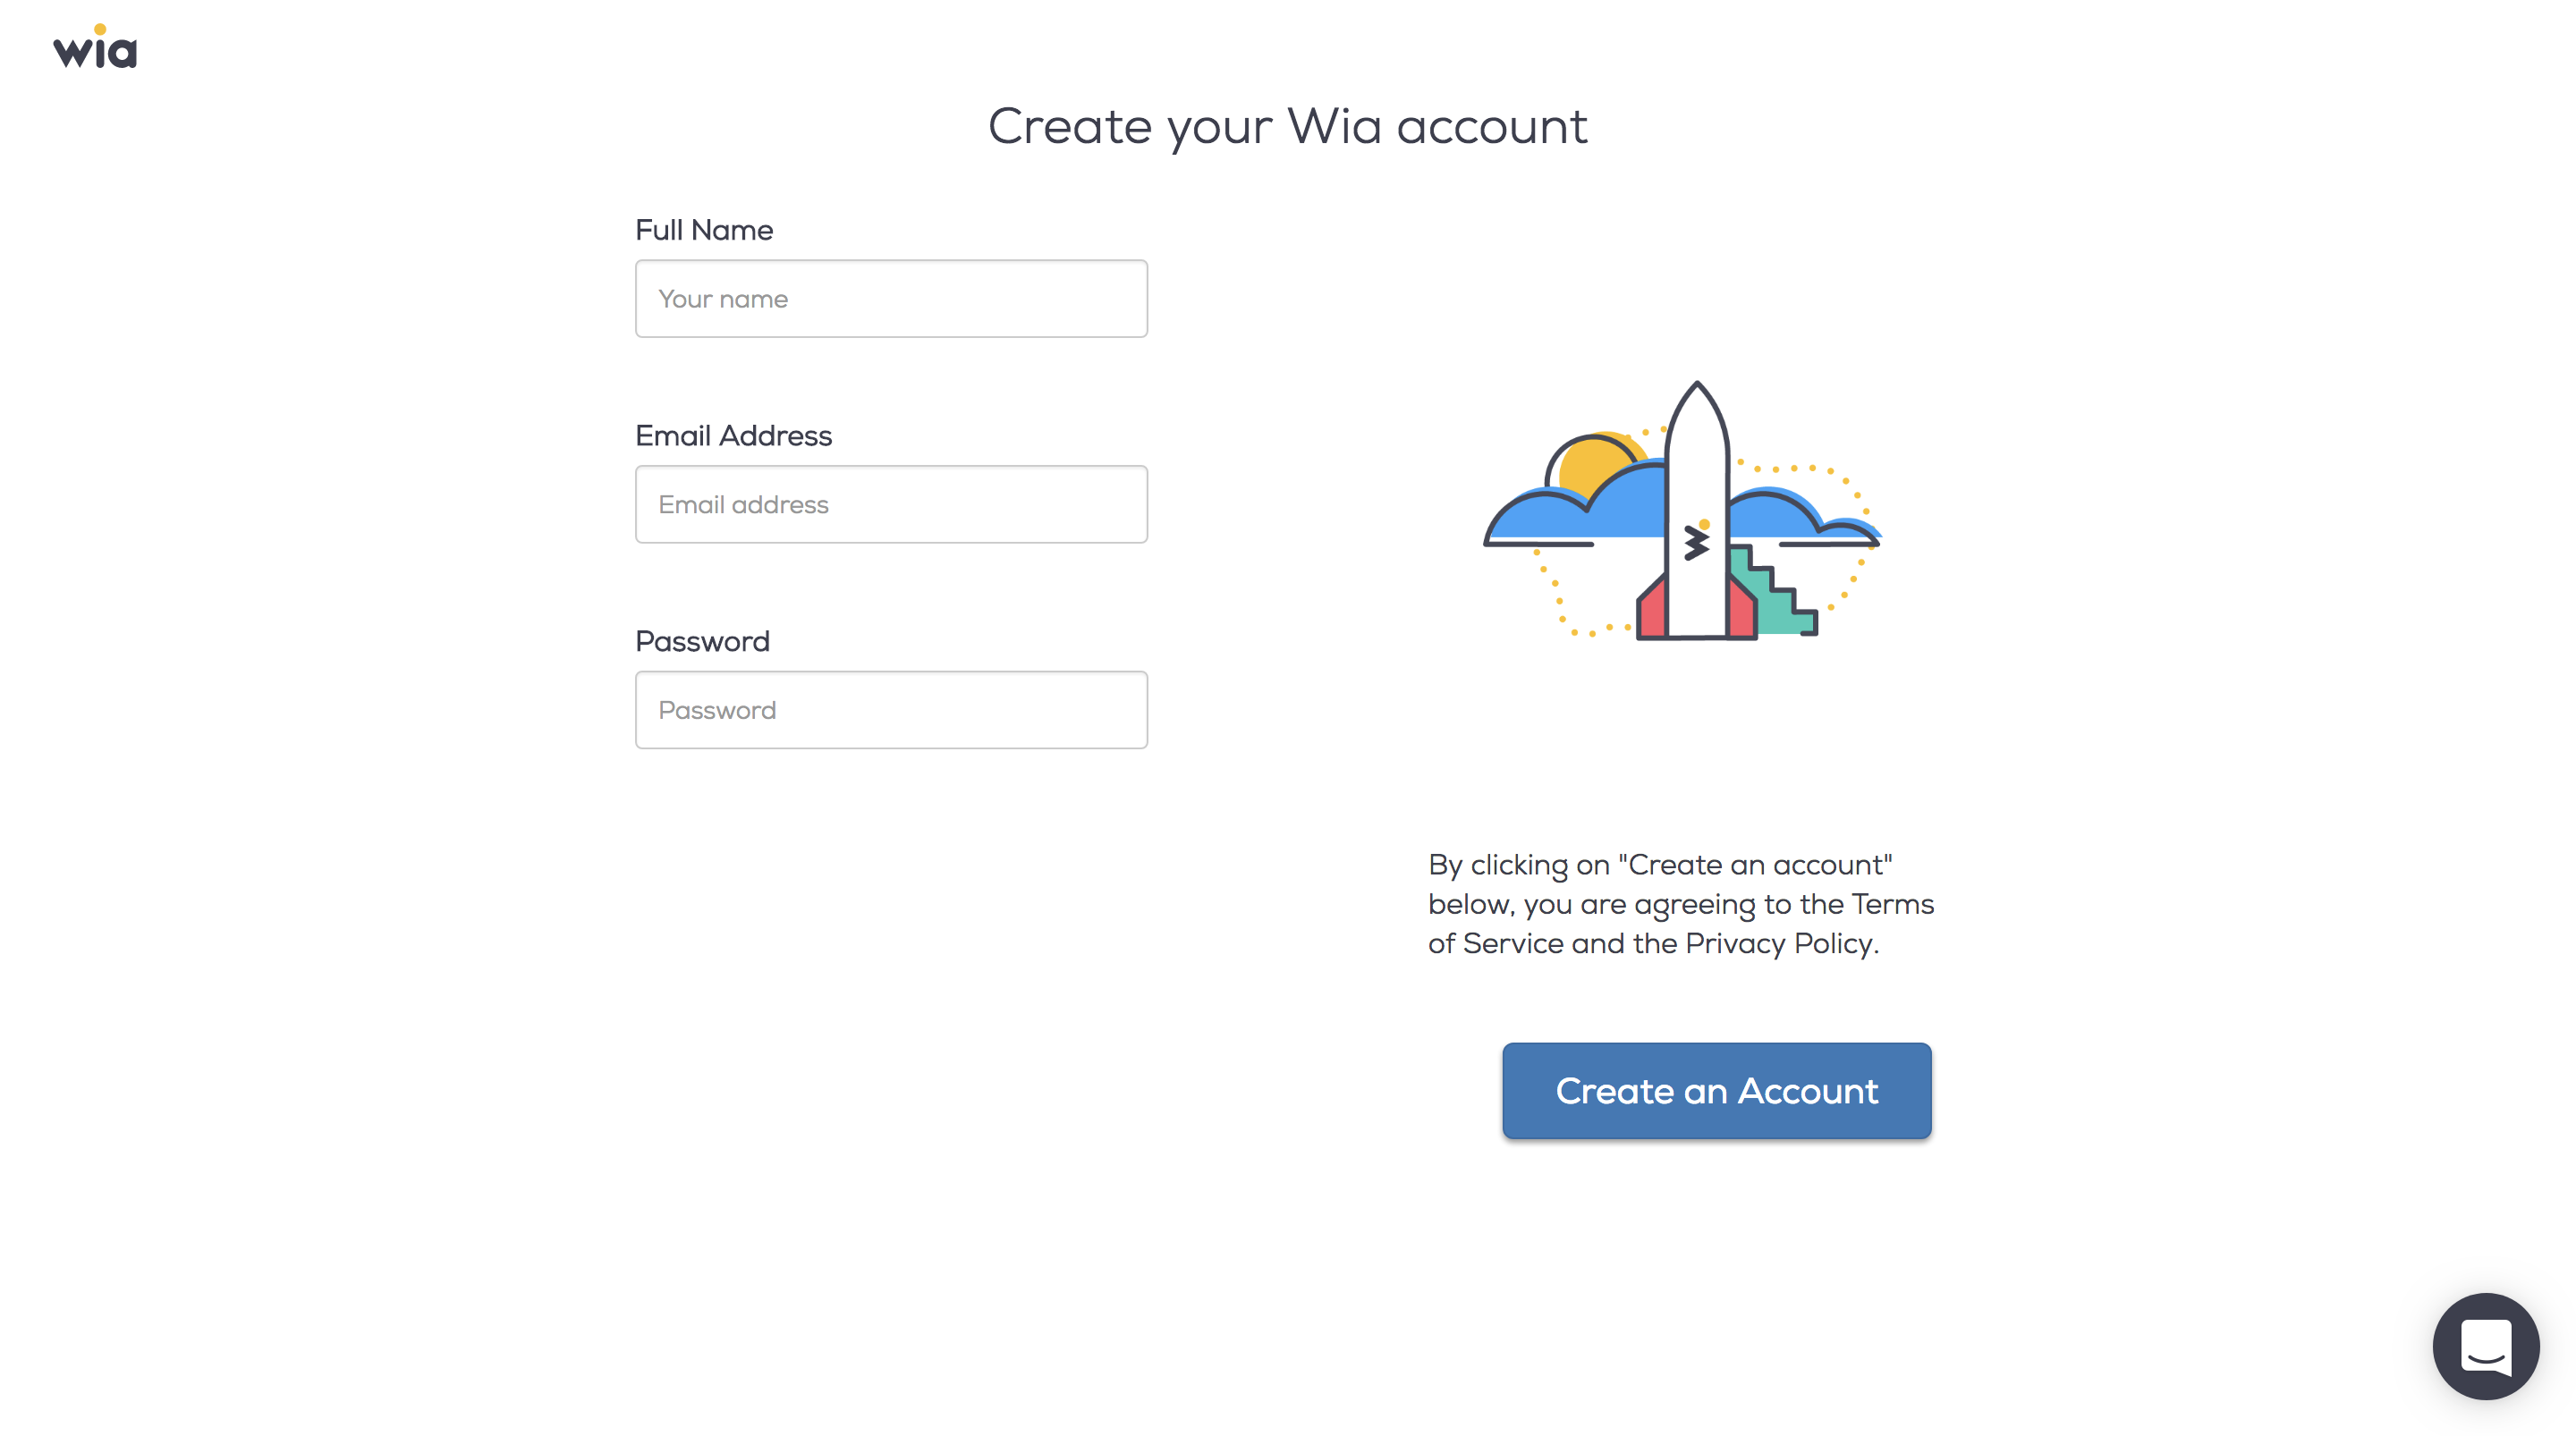 [Create a Wia Account](https://www.wia.io/signup)